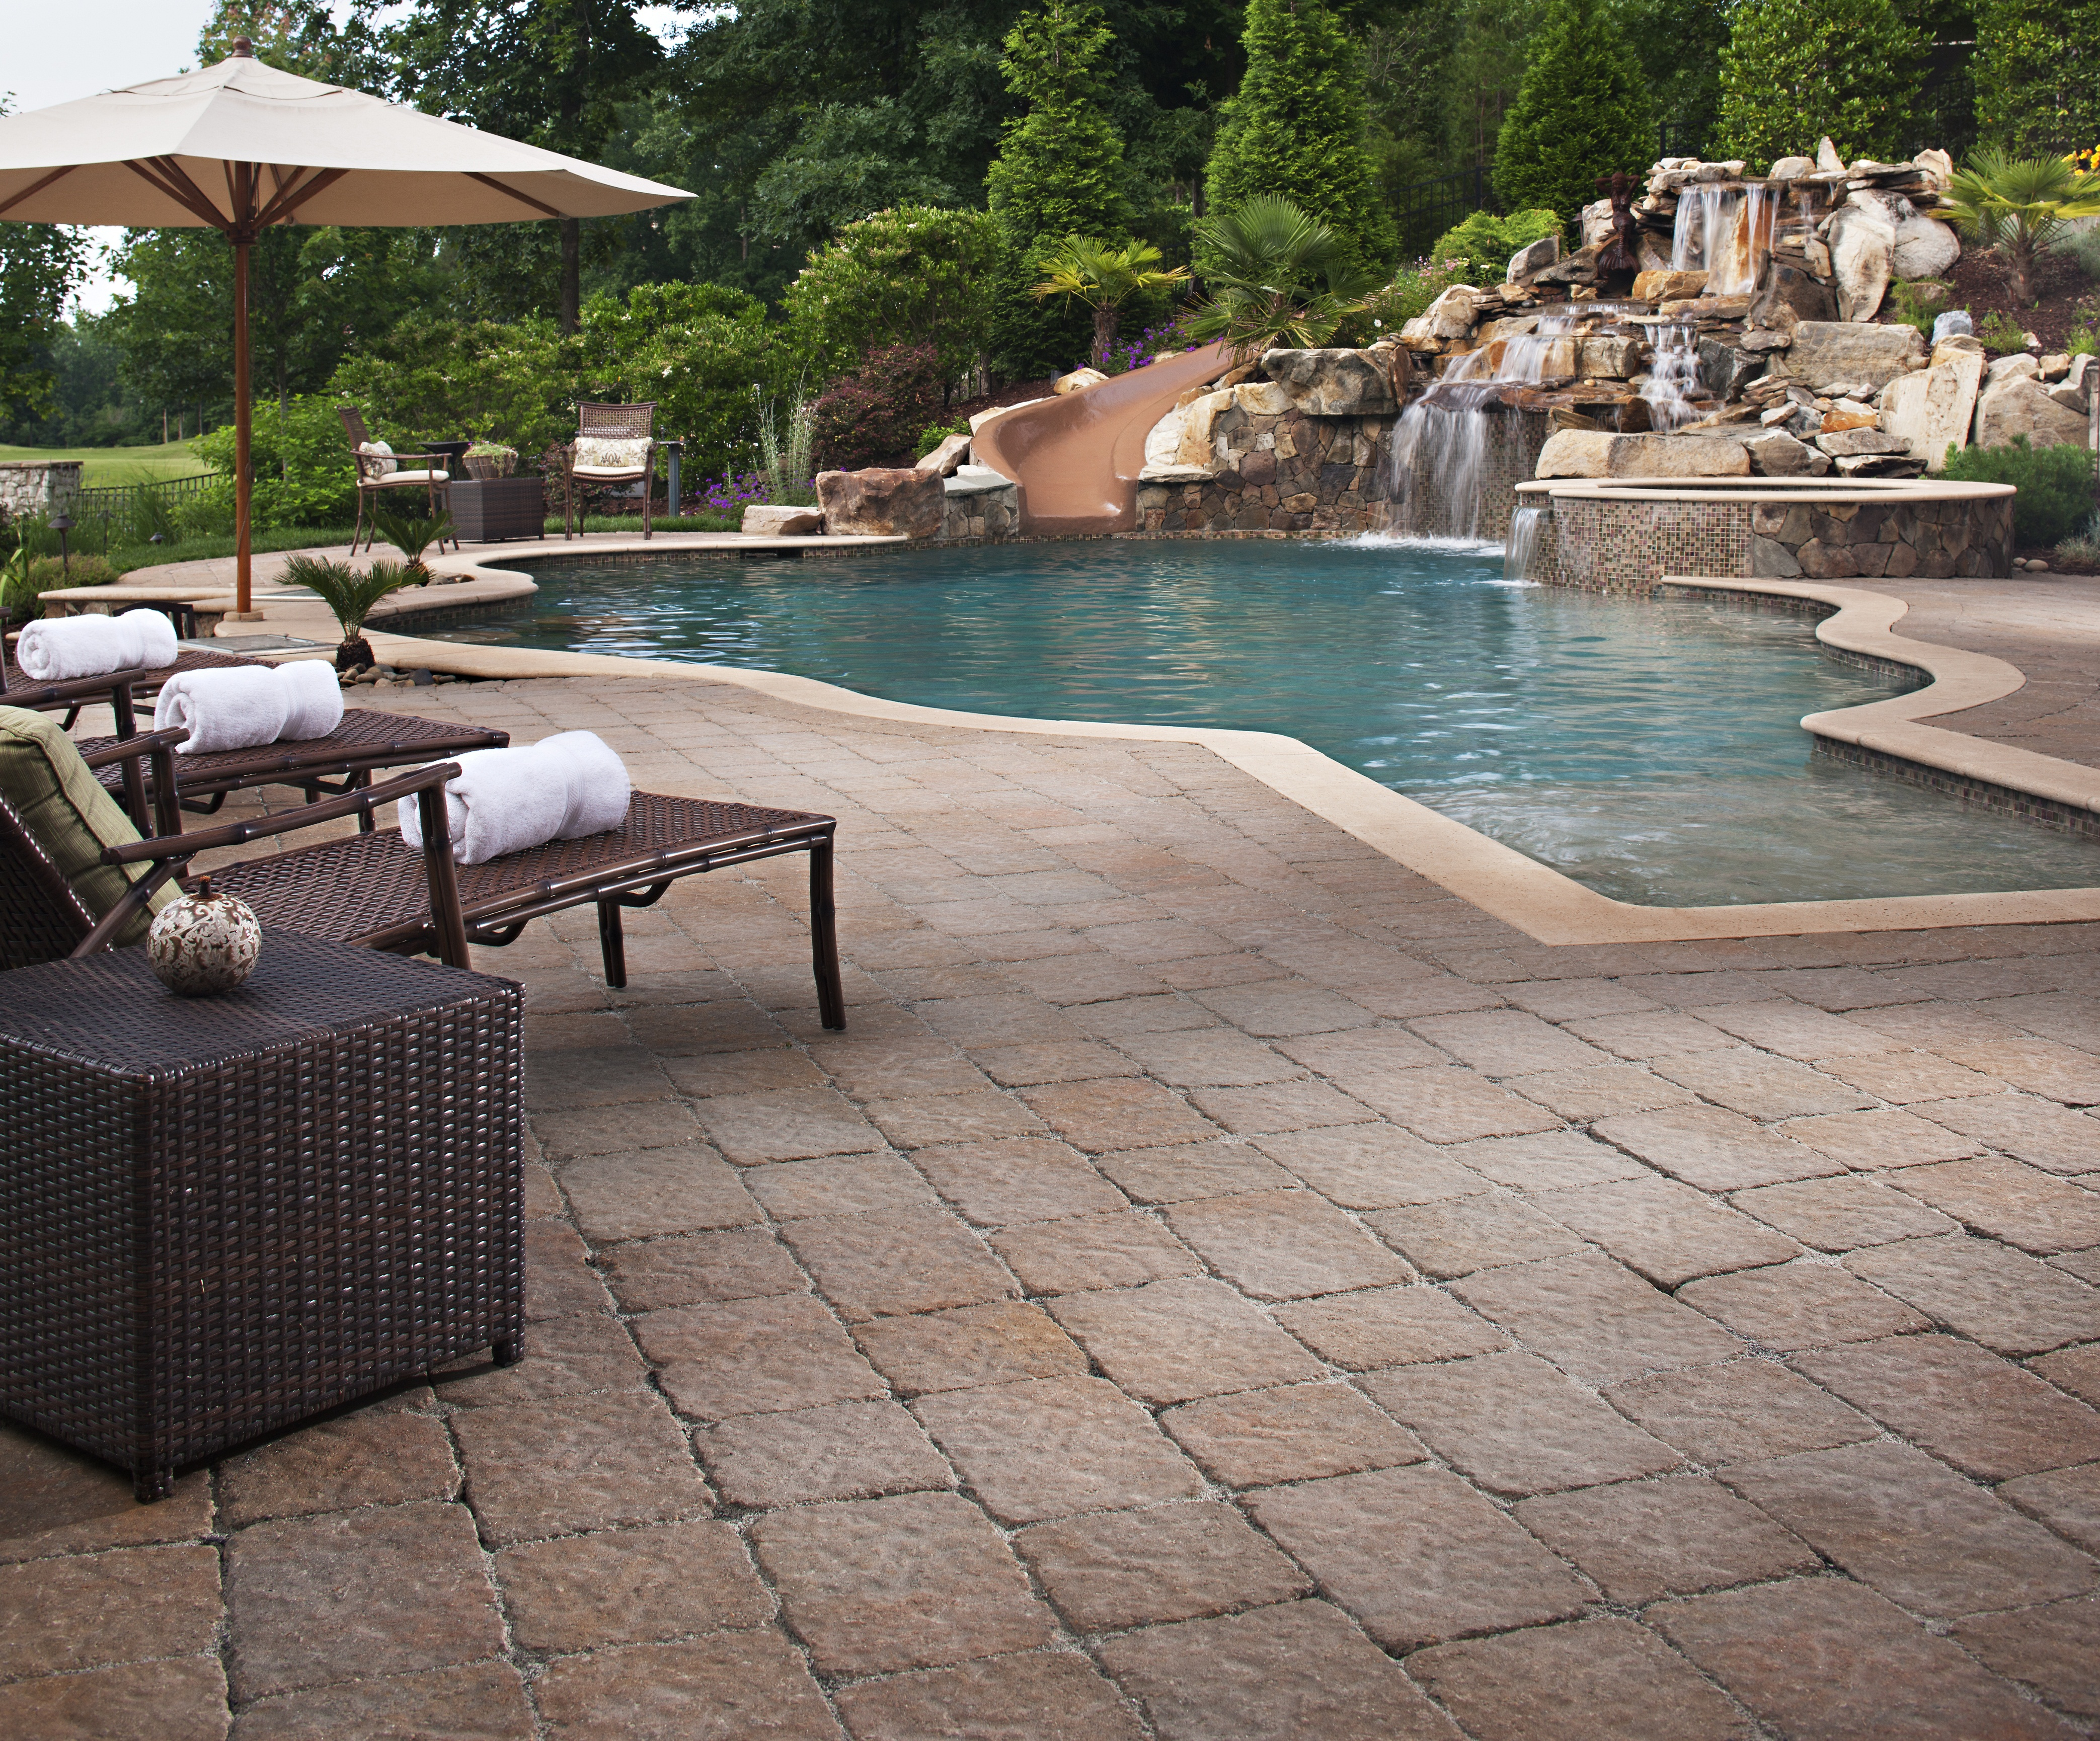 Pool Deck Materials Guide Top Decking Options Install It Direct Within Sizing 4173 X 3460